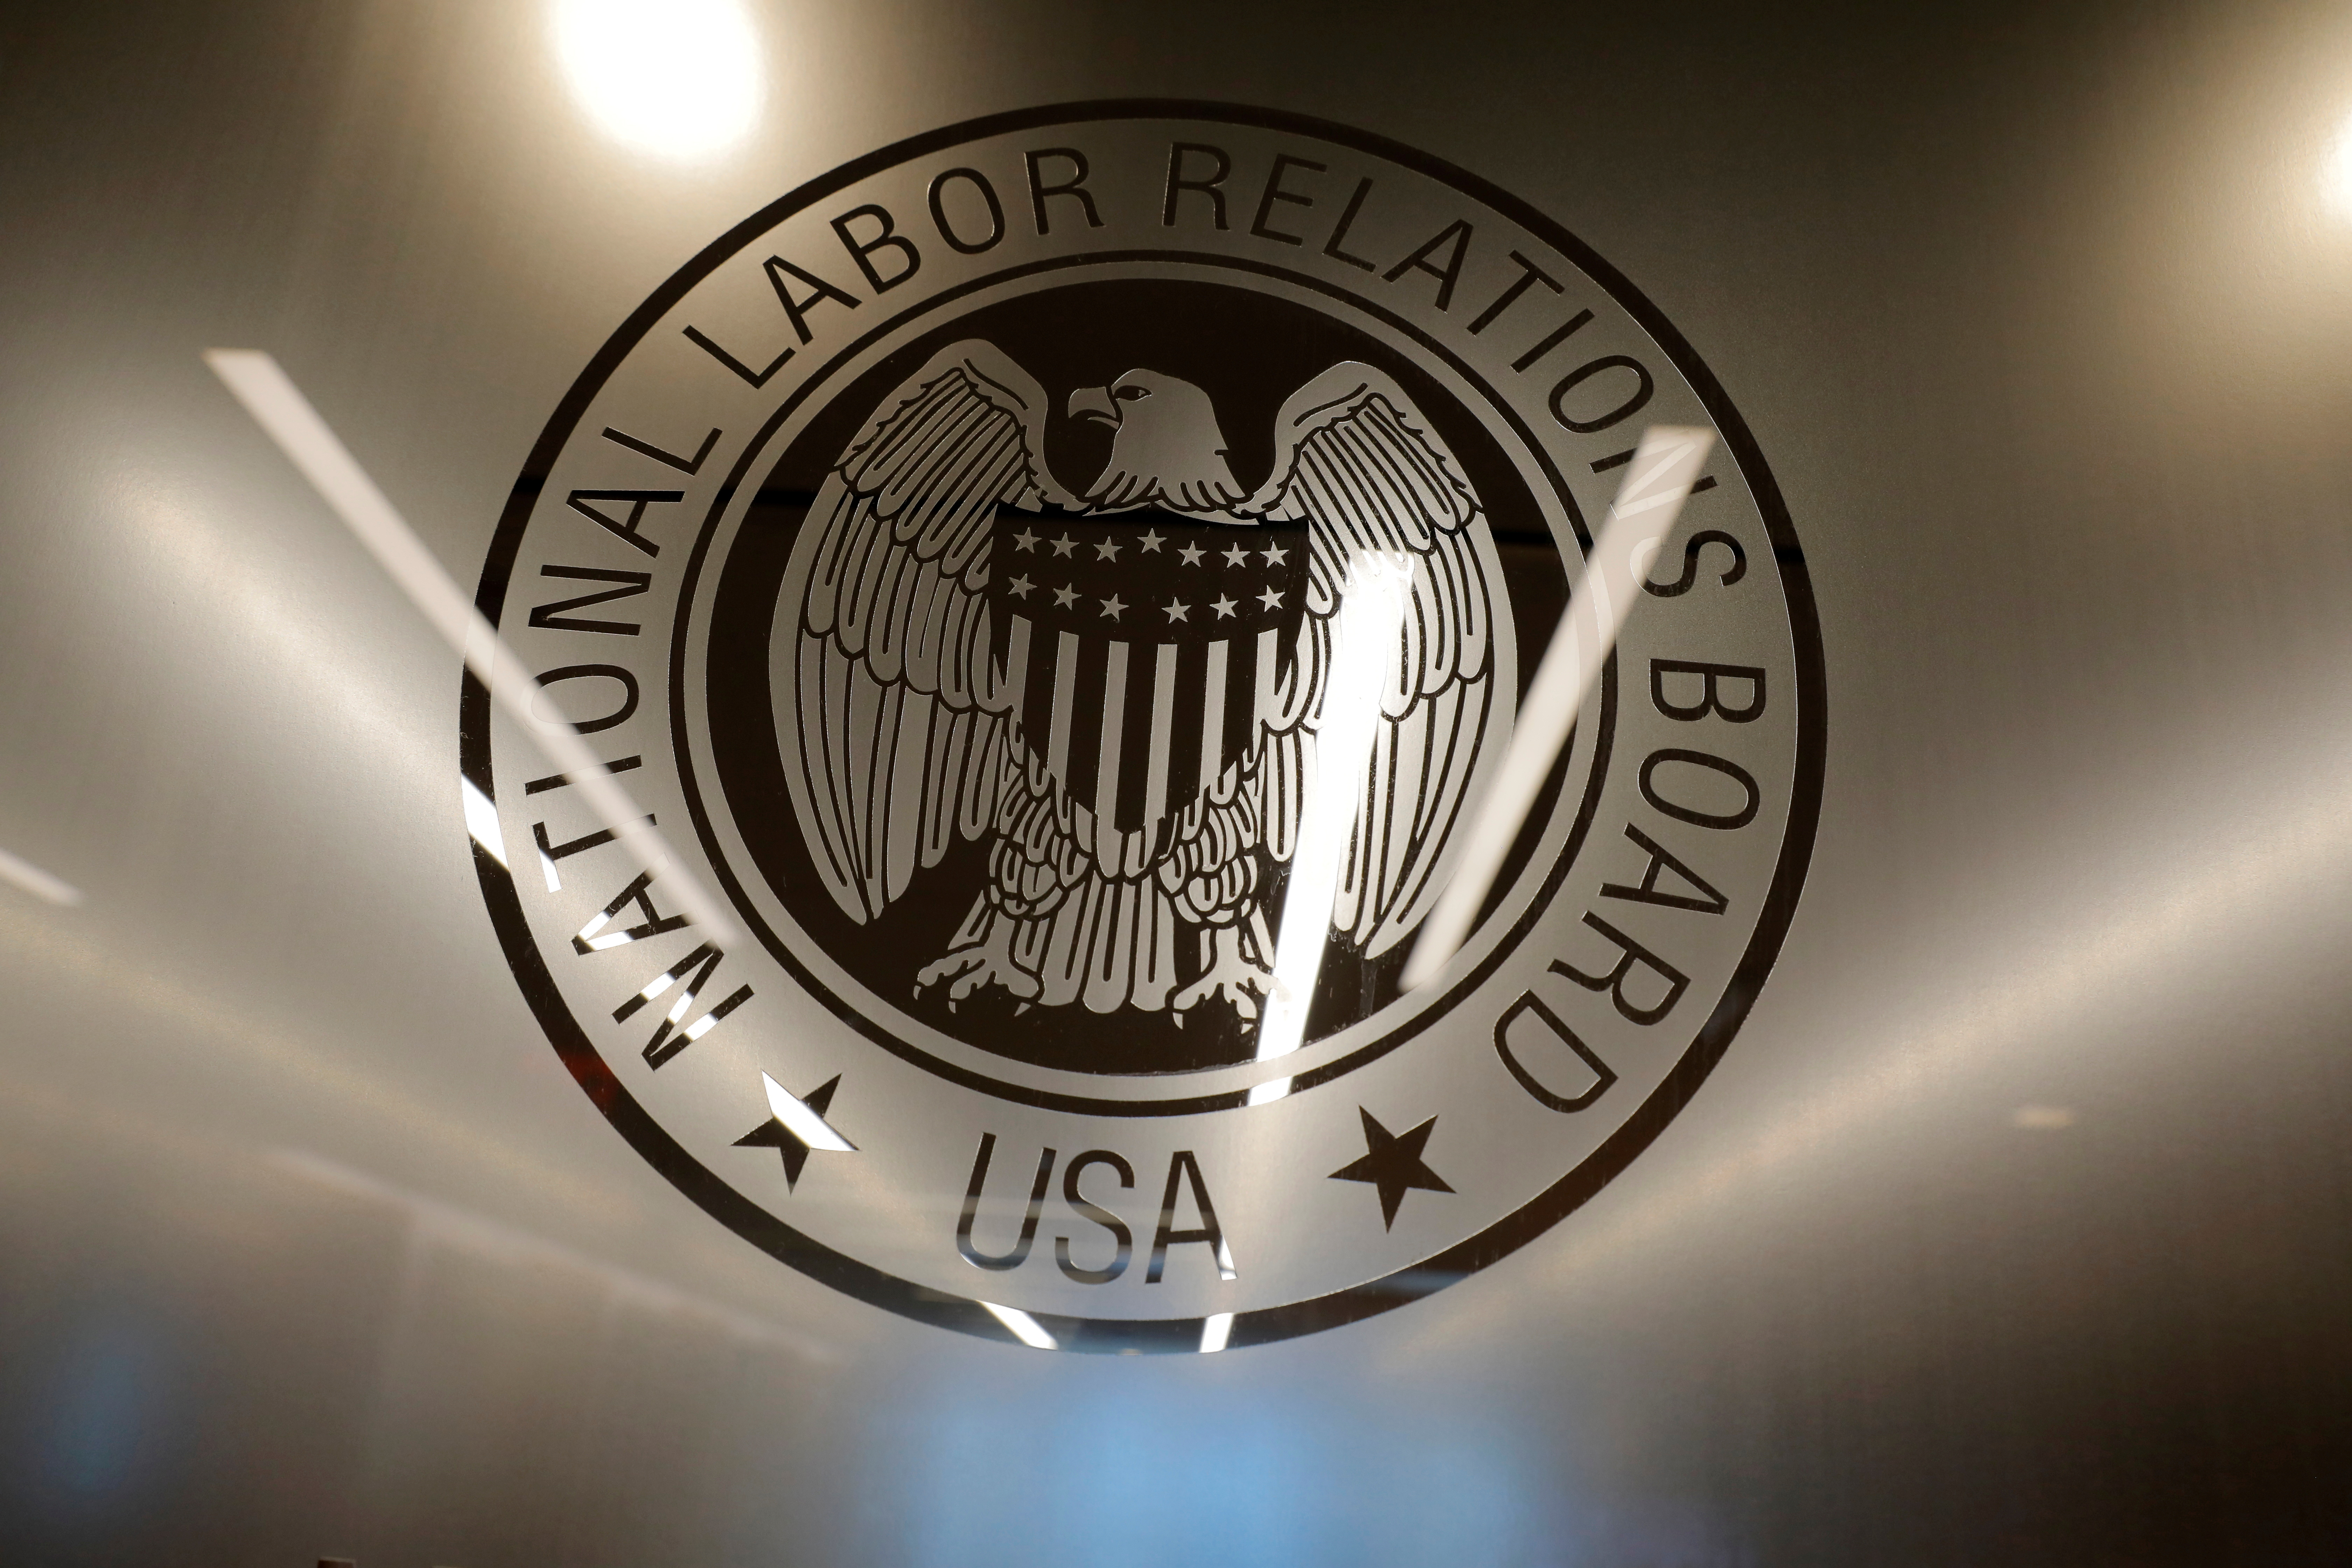 The seal of the National Labor Relations Board (NLRB) is seen at their headquarters in Washington, D.C., U.S., May 14, 2021. REUTERS/Andrew Kelly/File Photo